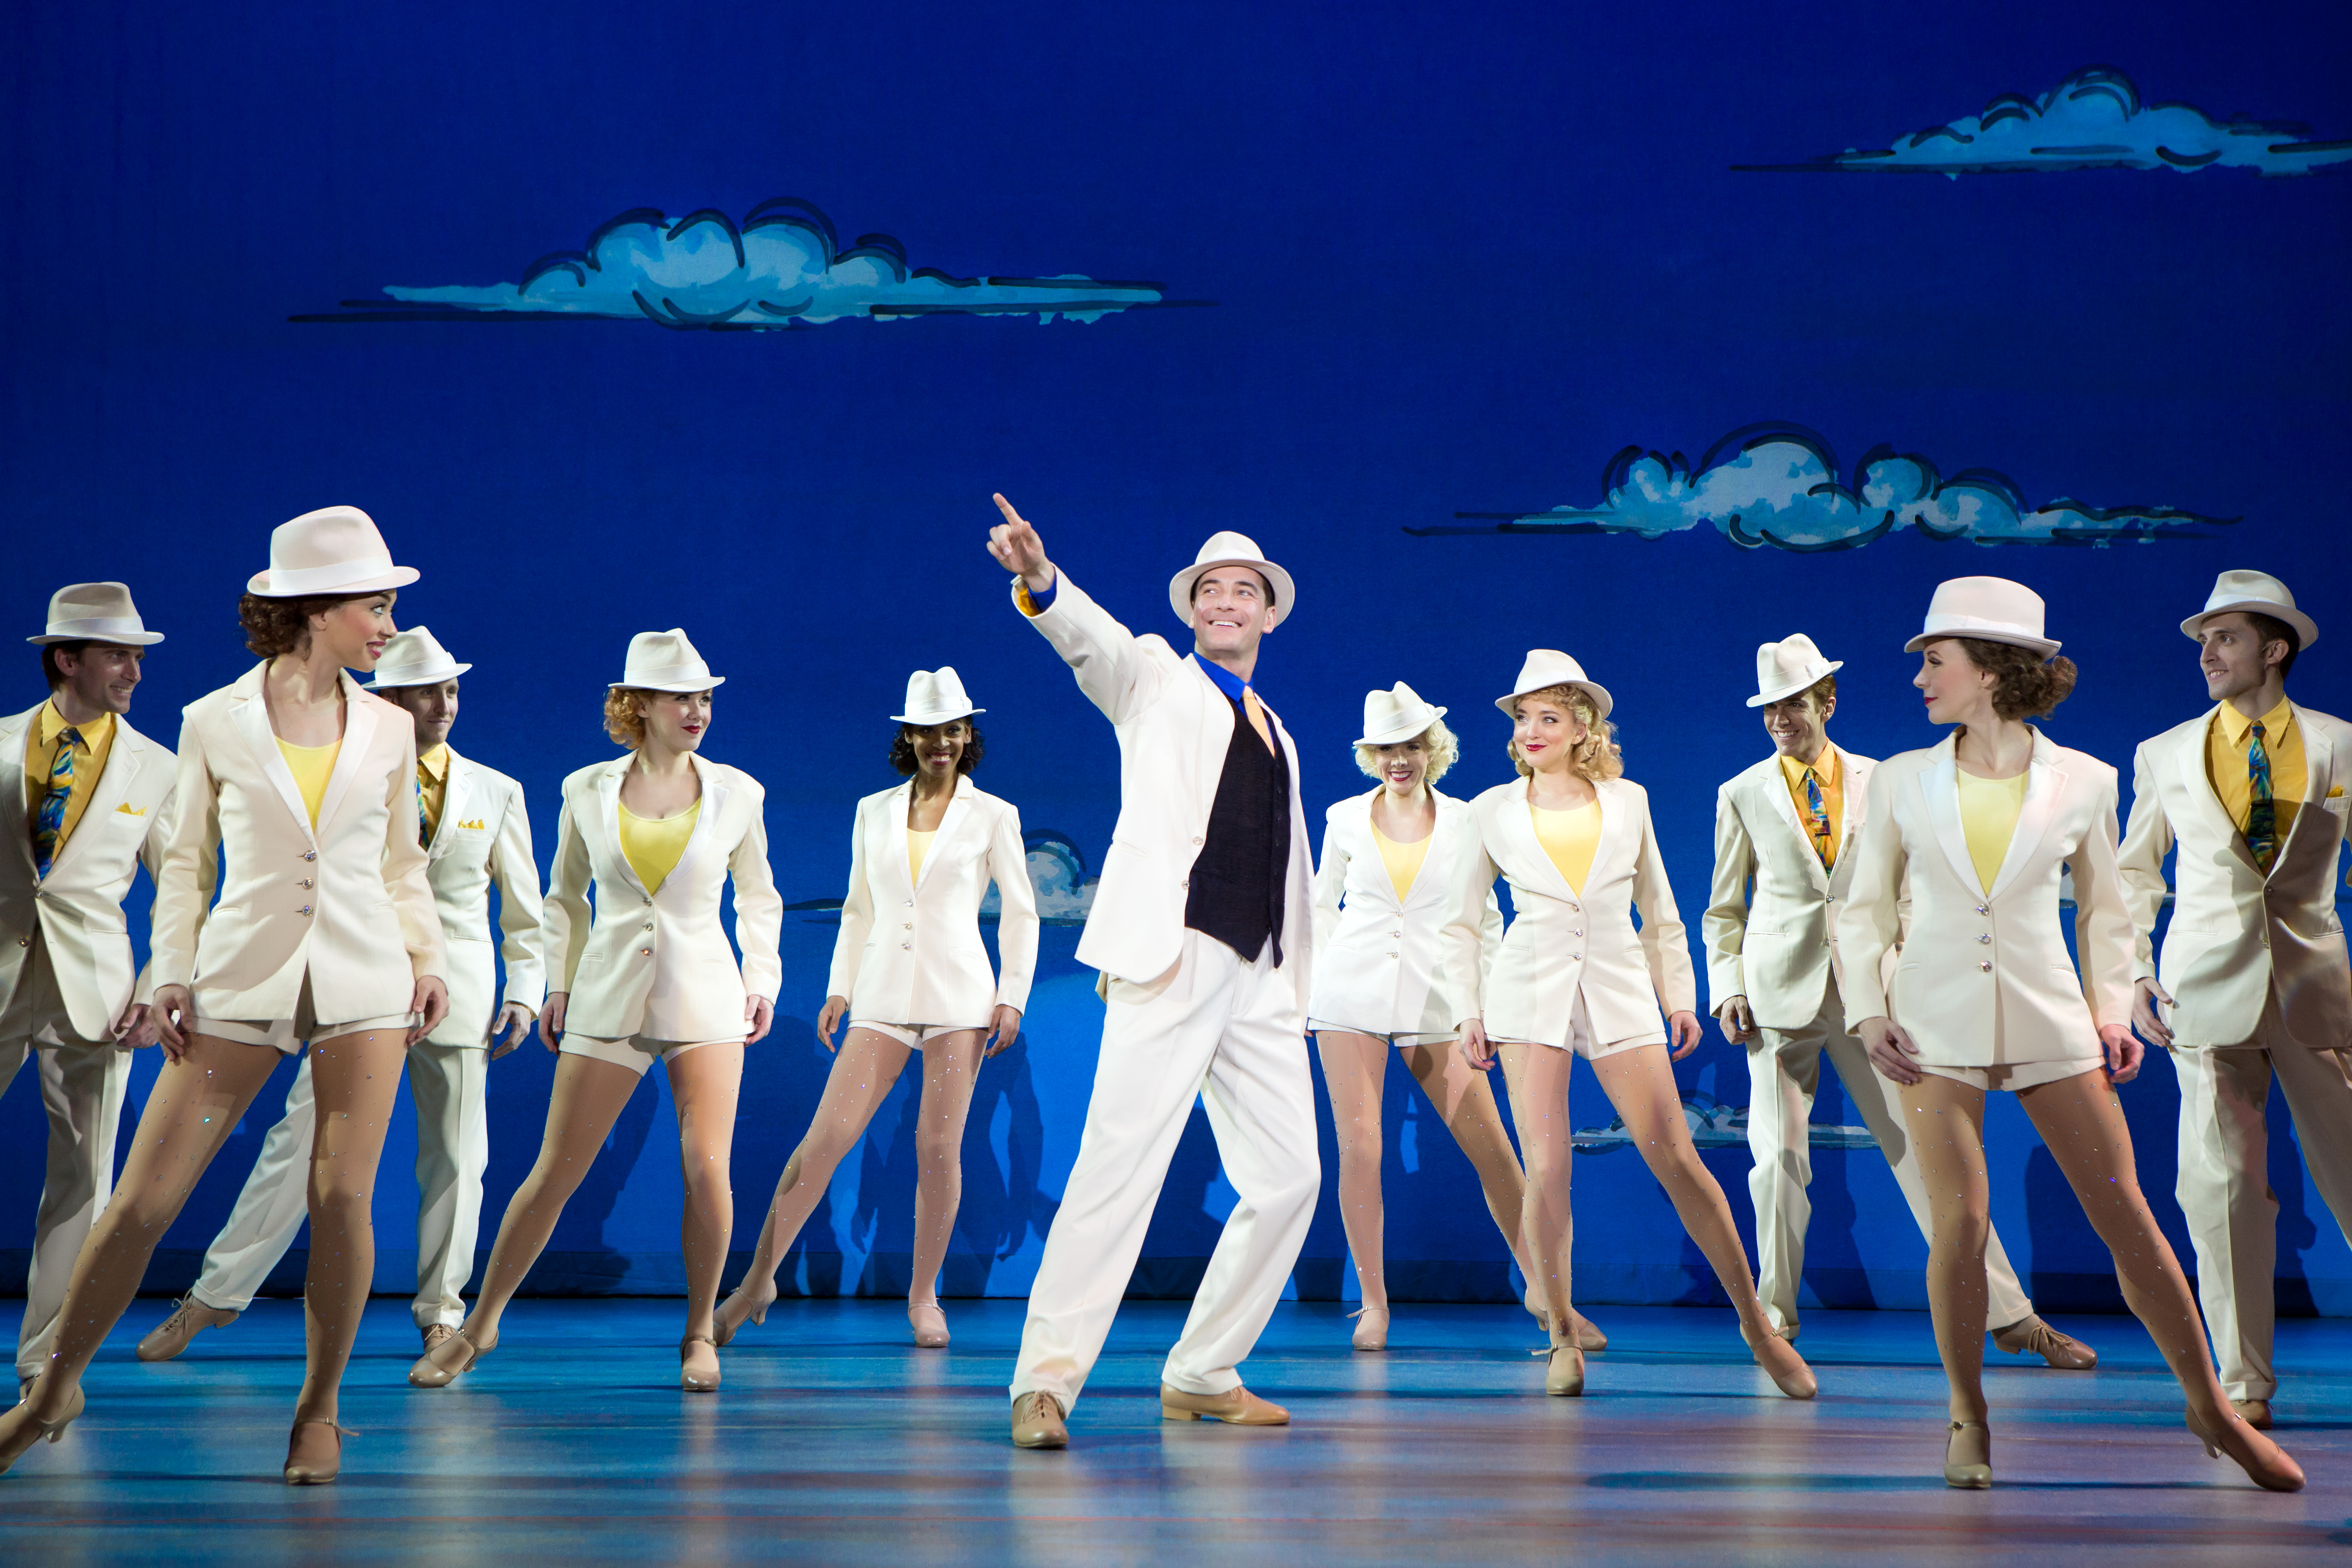 REVIEW: 'White Christmas' at the Buell is a blizzard of